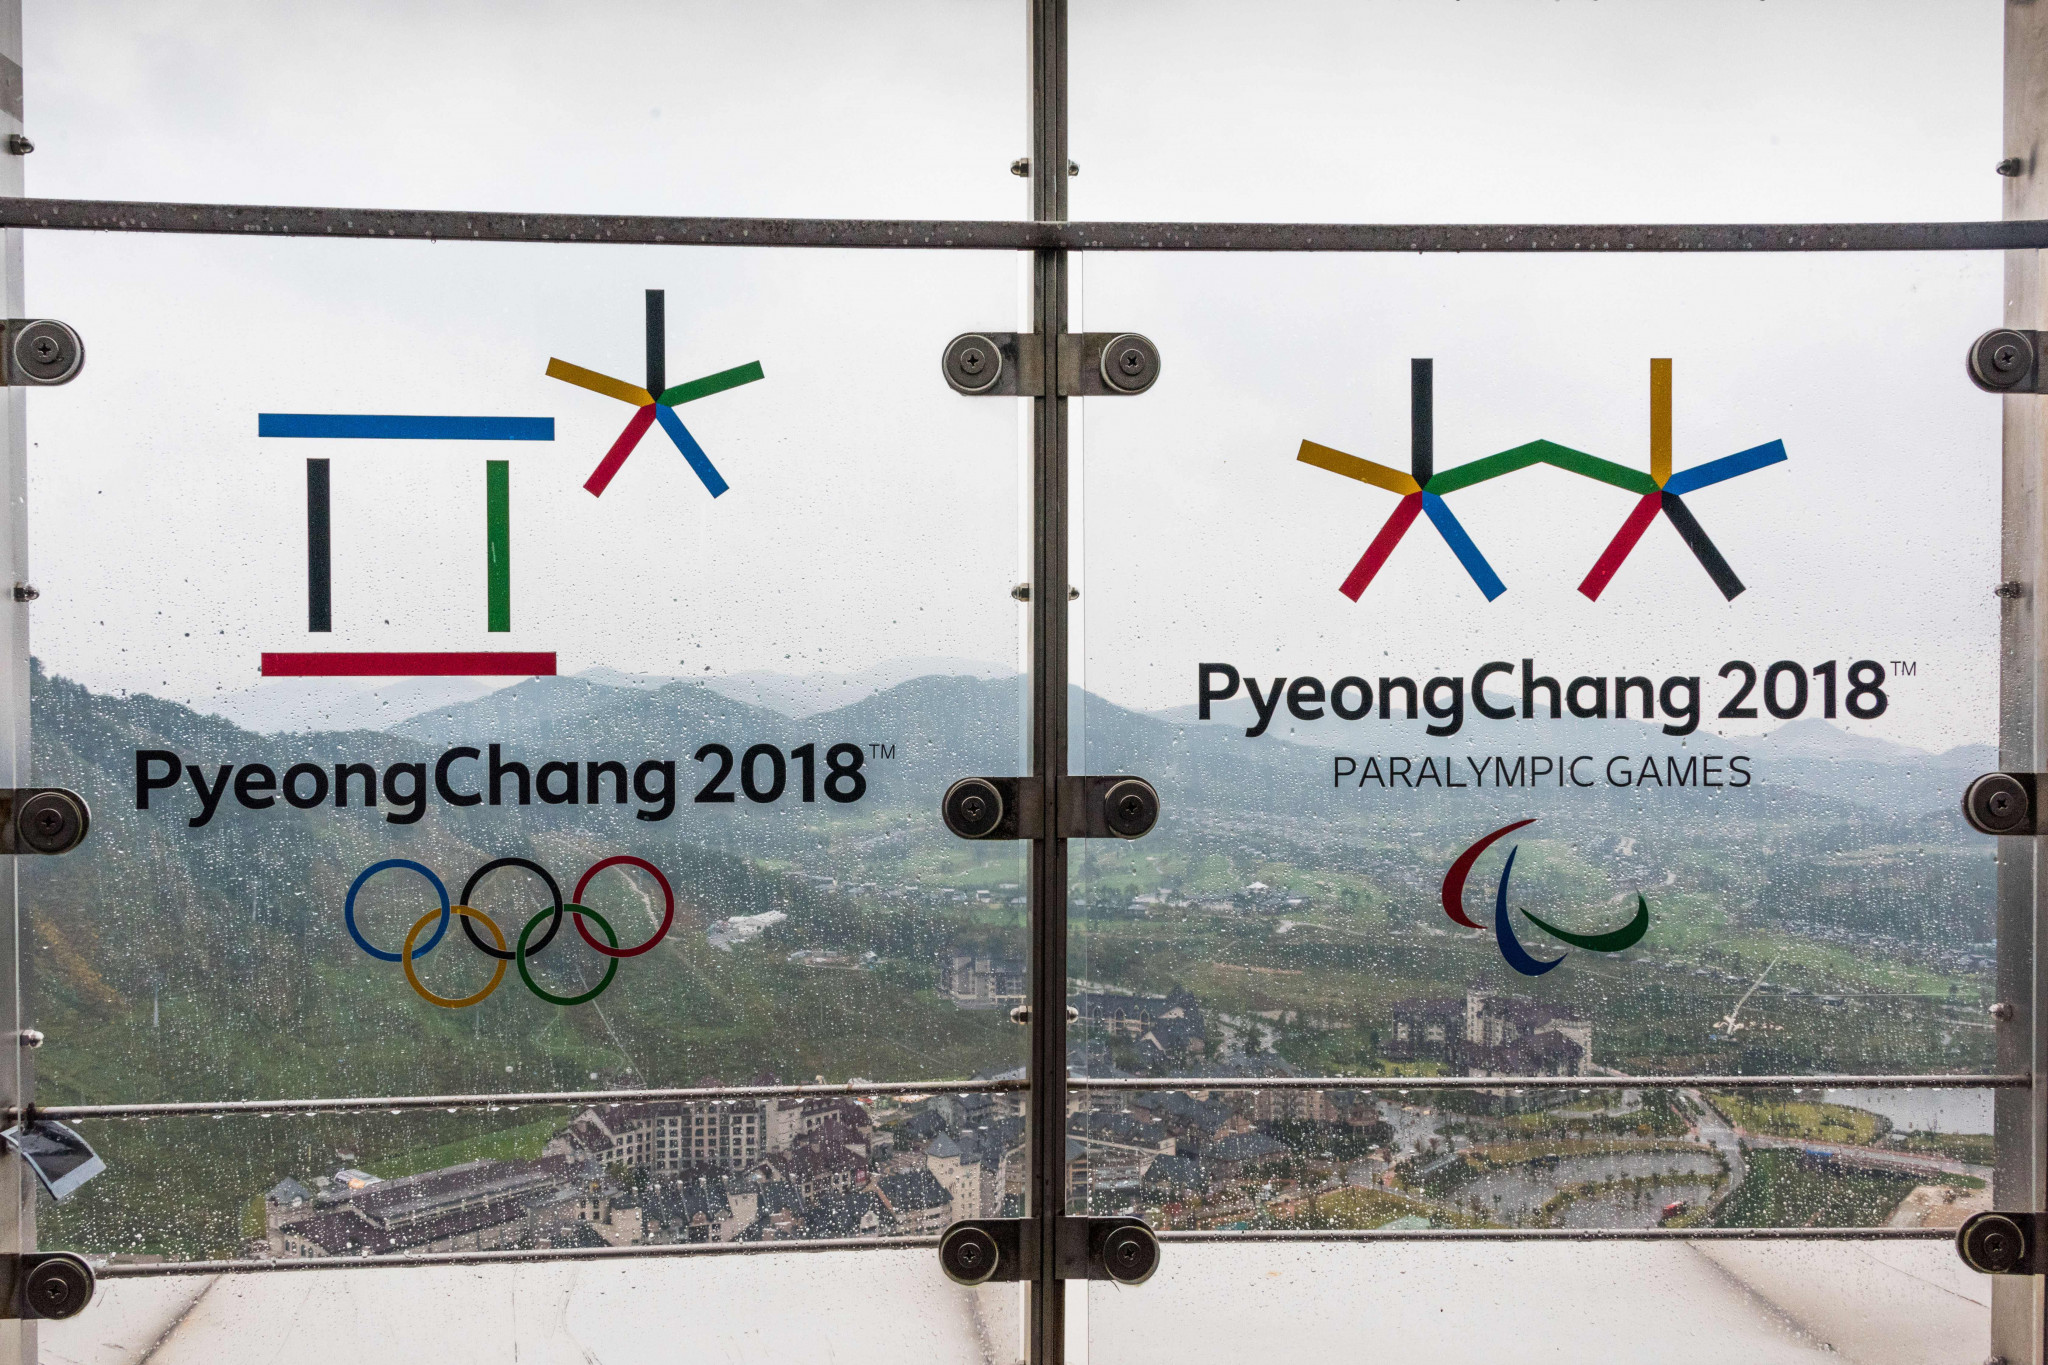 Security fears are threatening to overshadow Pyeongchang 2018  ©Getty Images